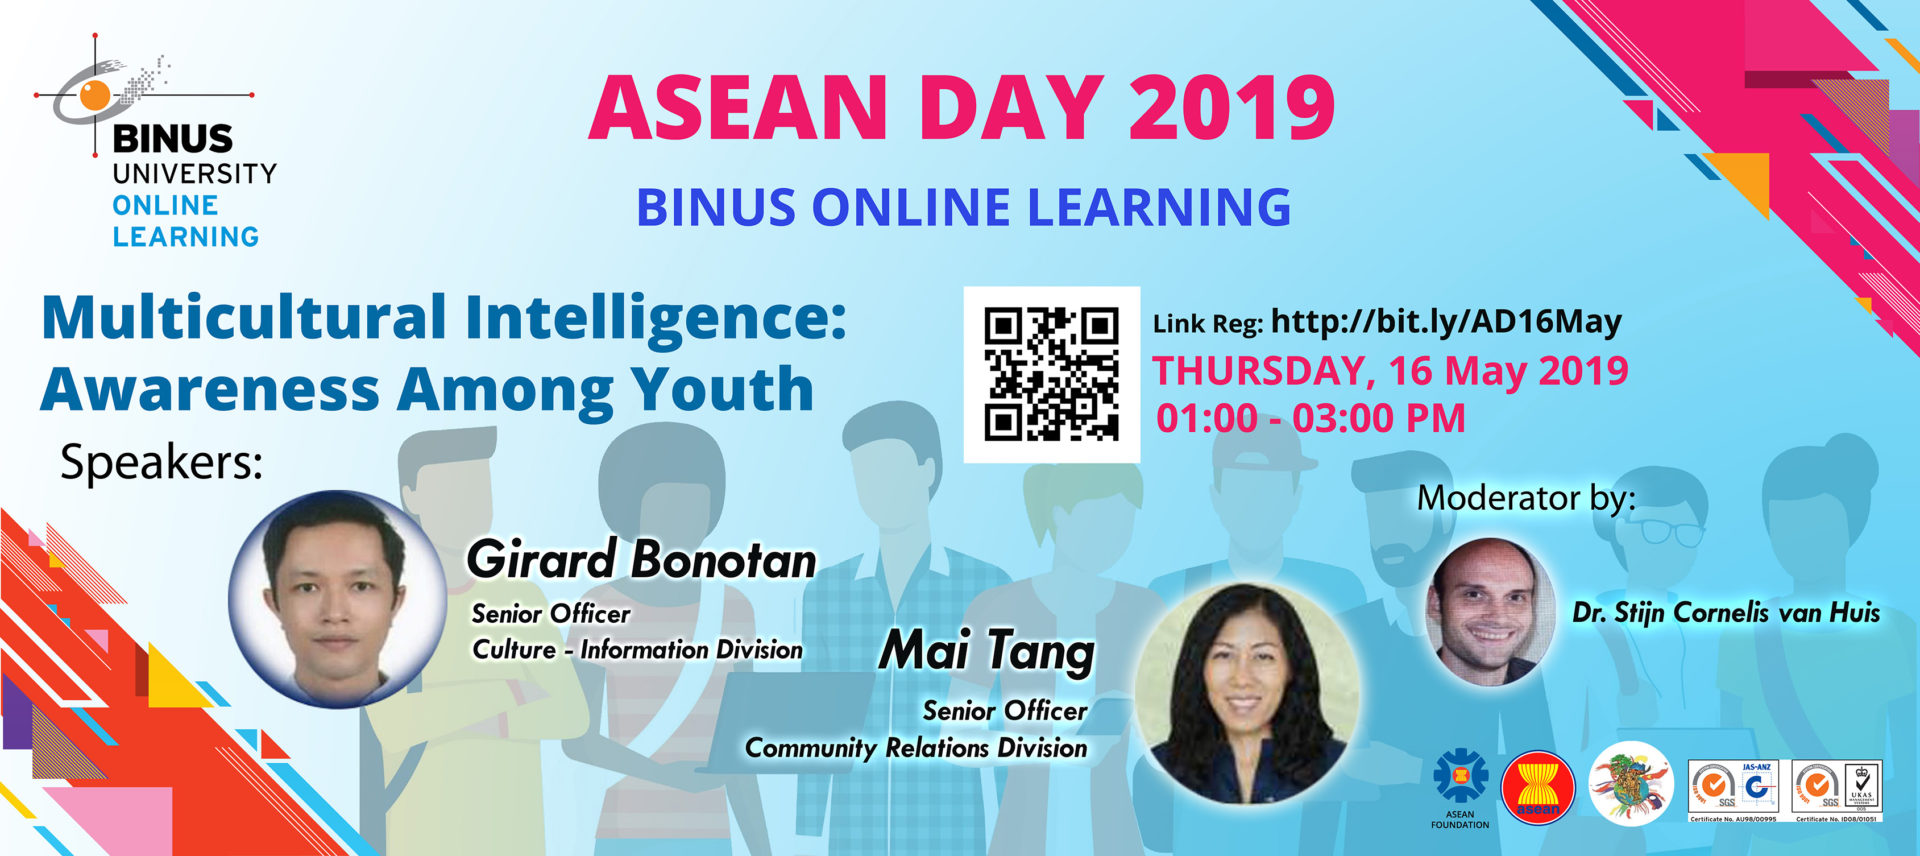 ASEAN DAY 2019 – Multicultural Intelligence: Awareness Among Youth Gallery